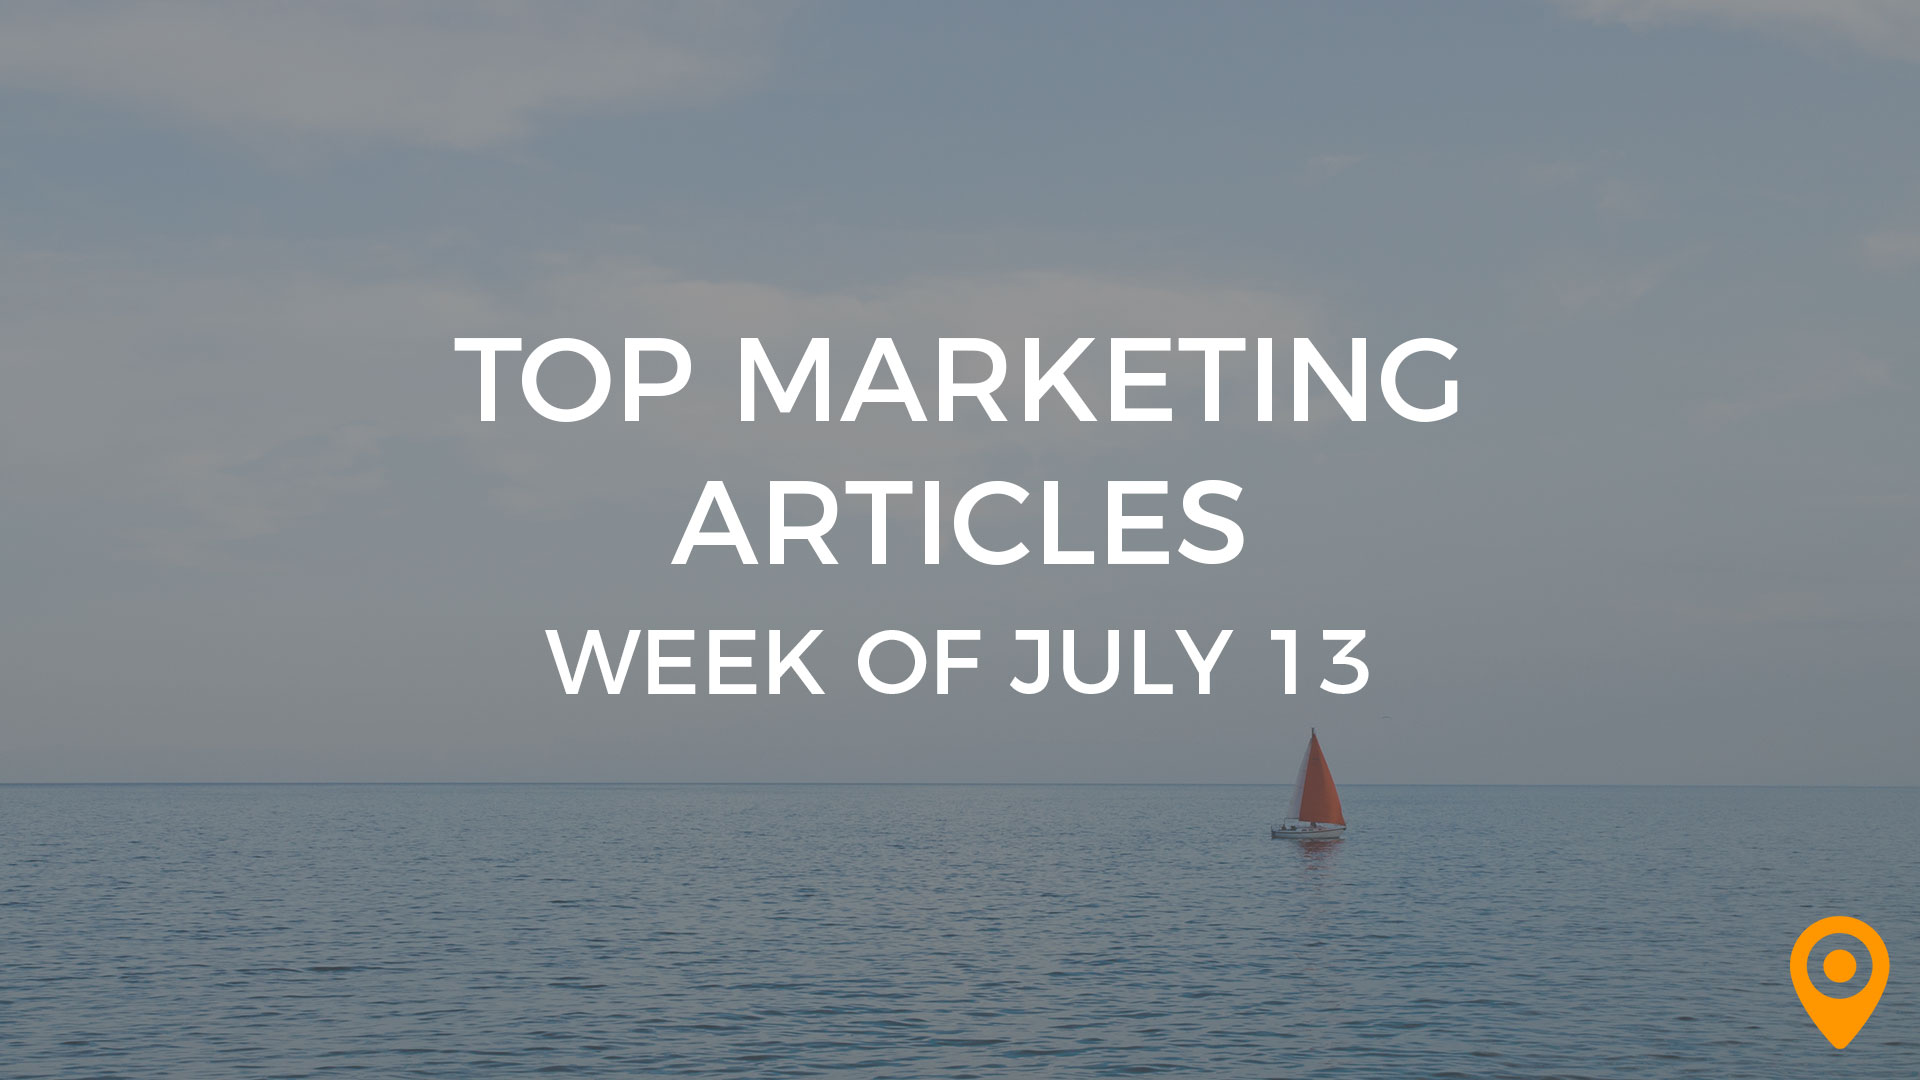 Top Marketing Articles - July 13